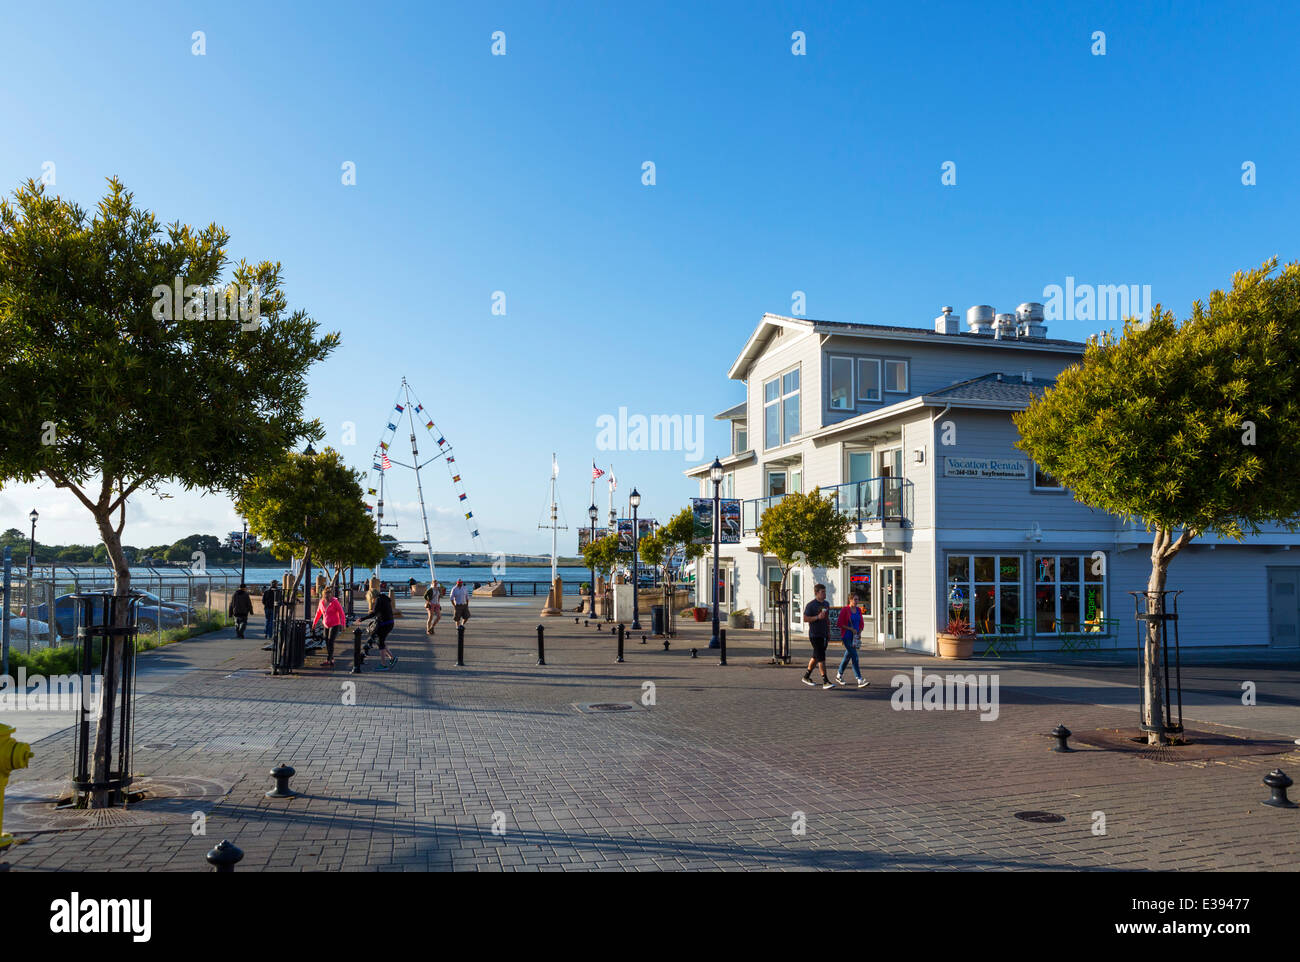 The waterfront looking towards the Boardwalk in downtown Eureka, Humboldt County, California, USA - Stock Image